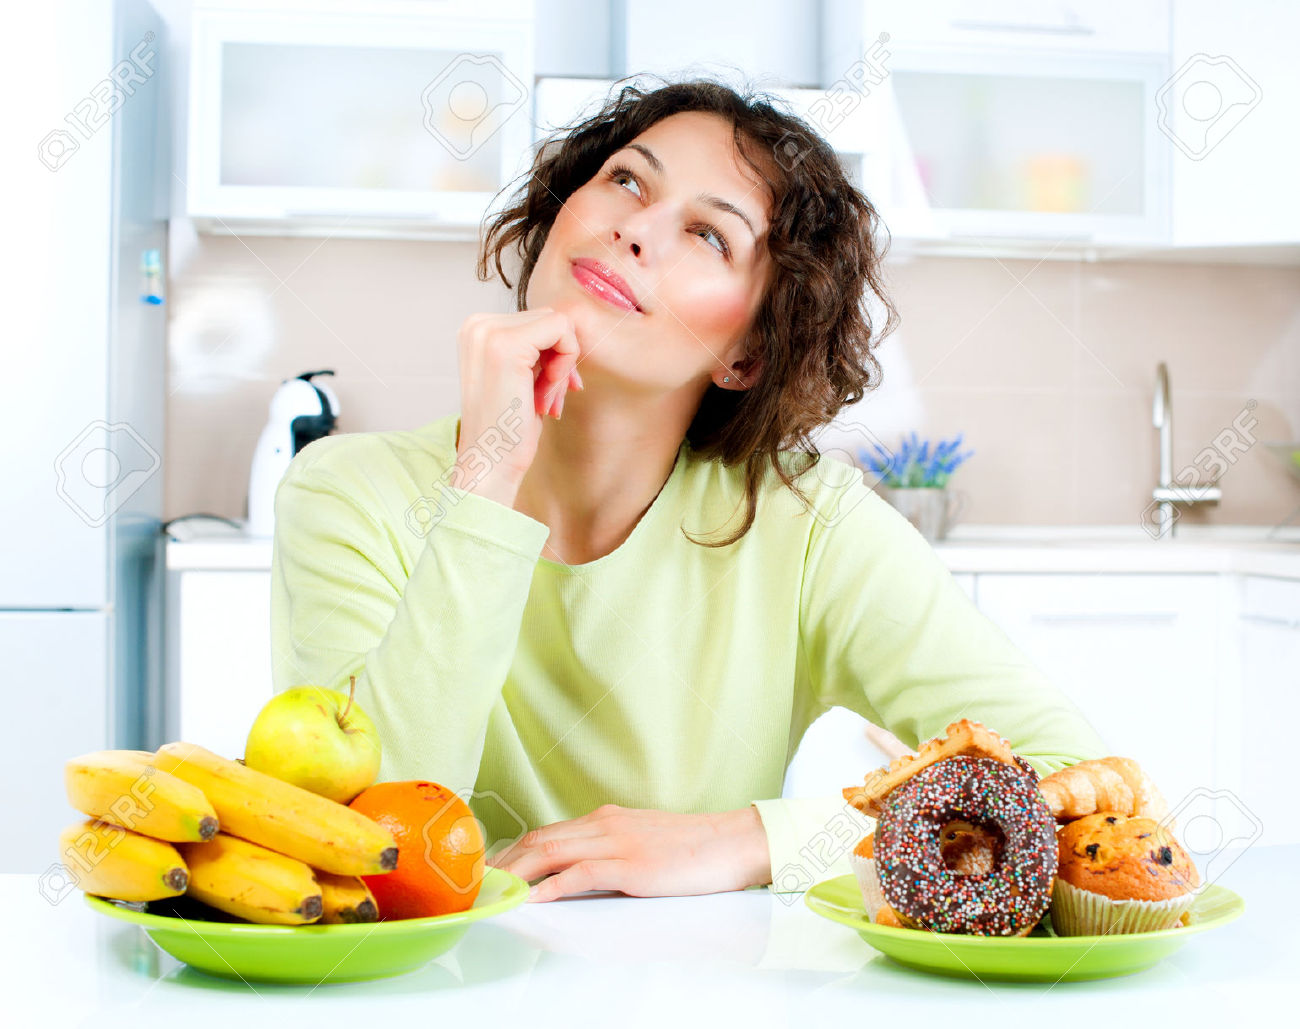 23736090-Dieting-concept-Young-Woman-choosing-between-Fruits-and-Sweets-Stock-Photo.jpg